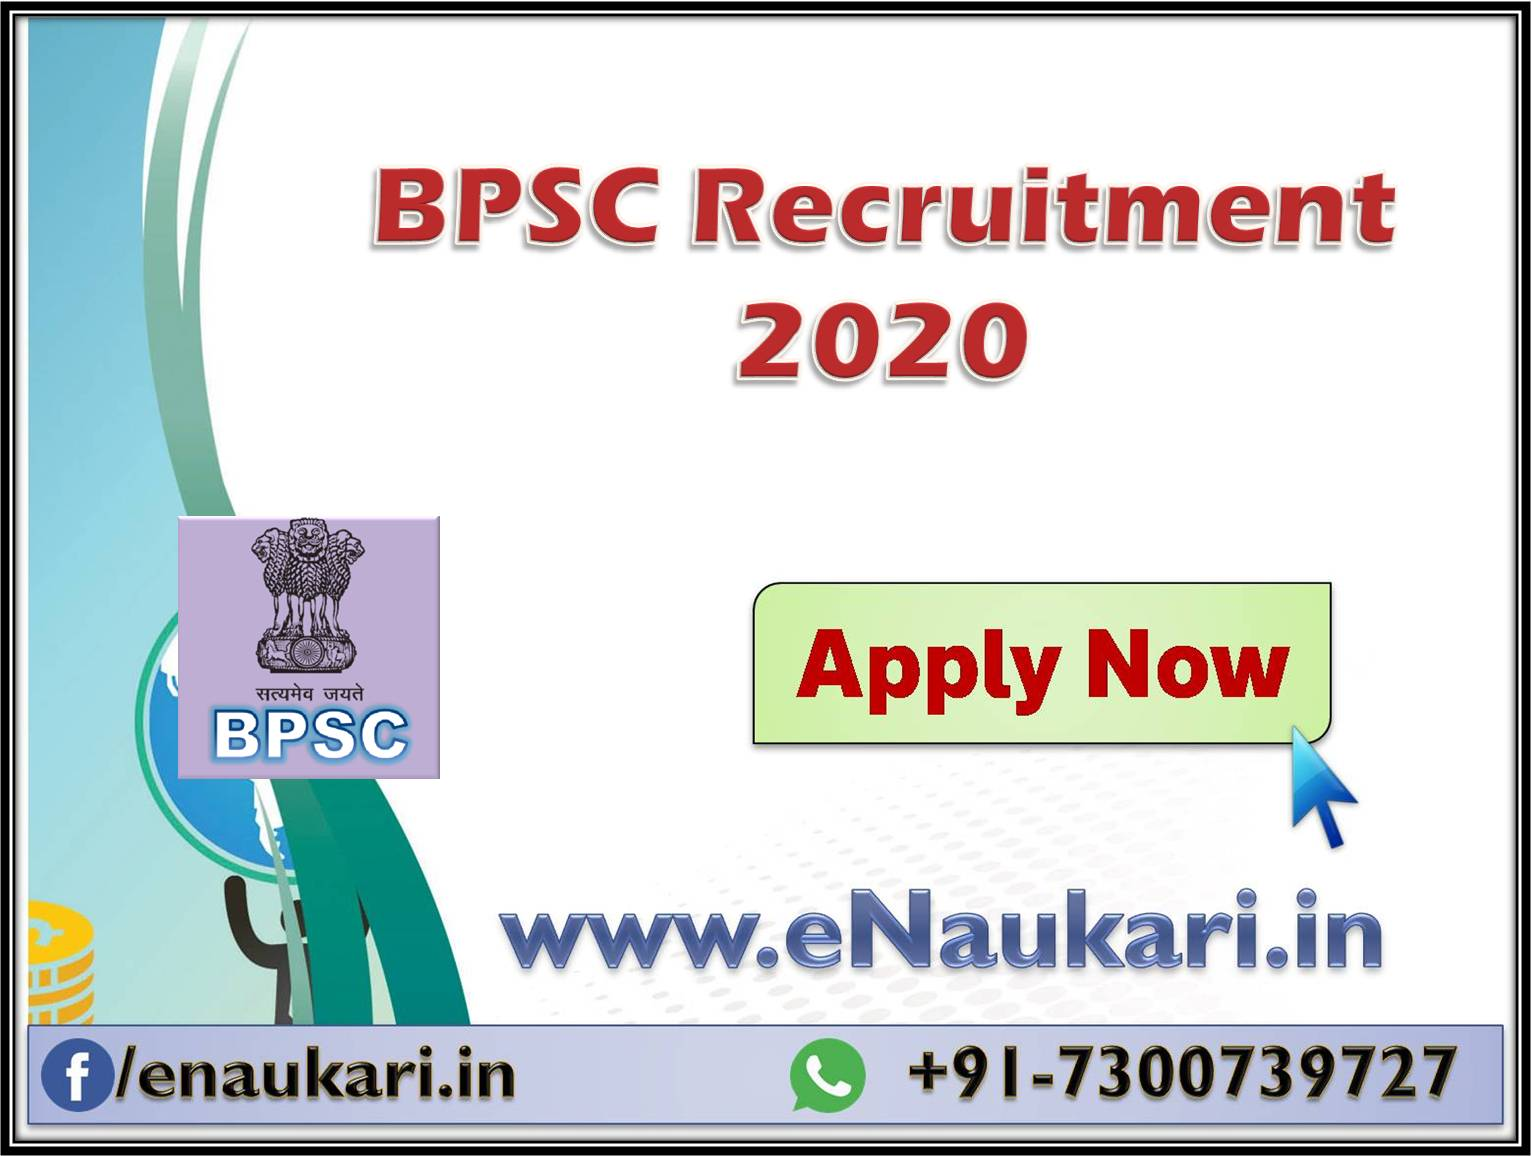 BPSC Recruitment 2020